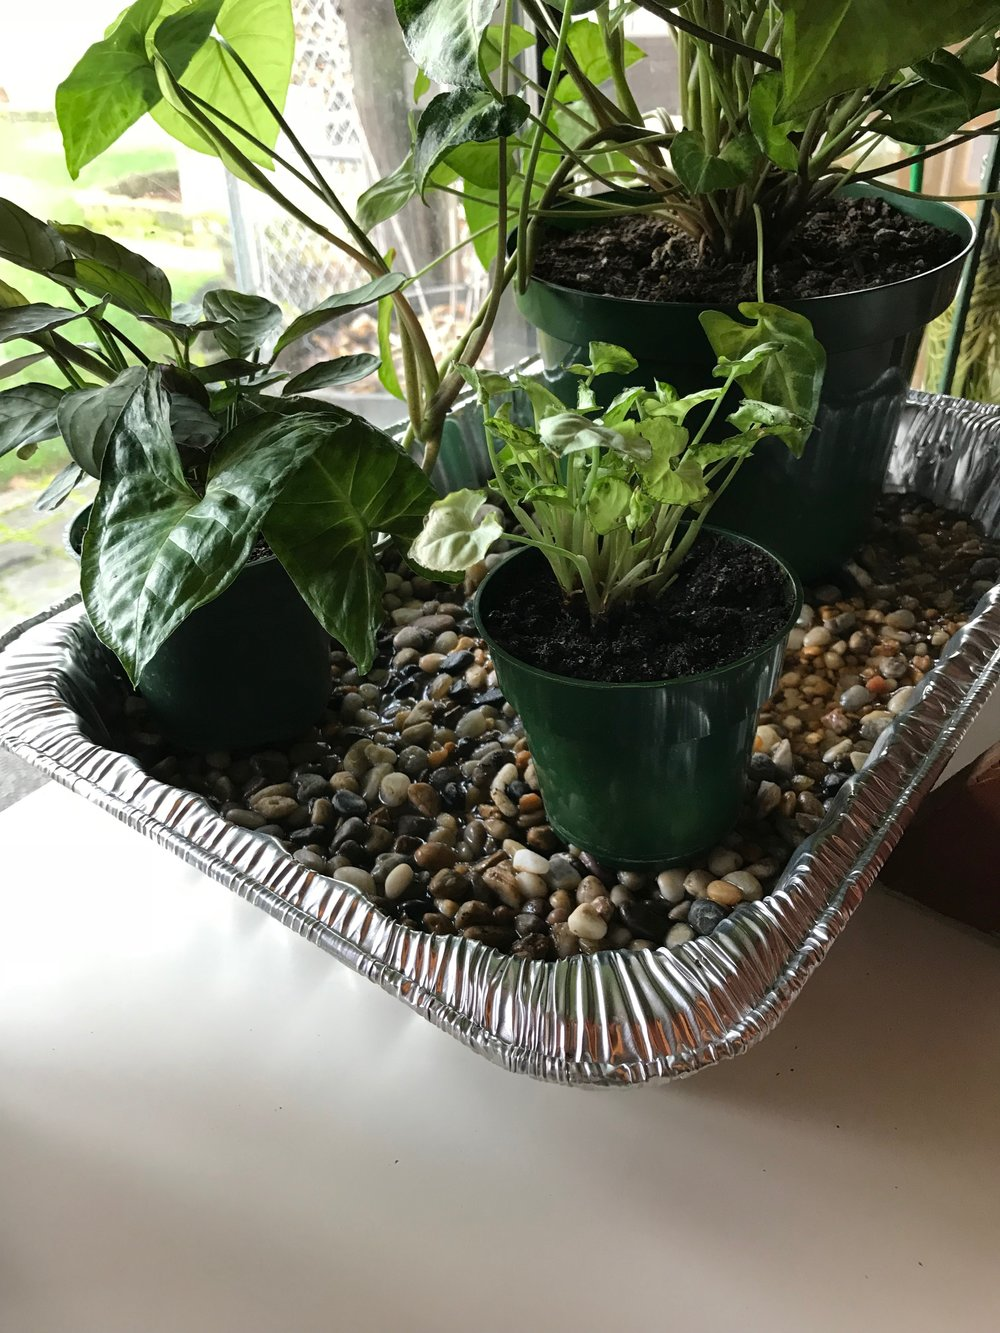 pebble tray - Add water to the level of the pebbles, but not above. Evaporation increases humidity. Photo credit Jen D.